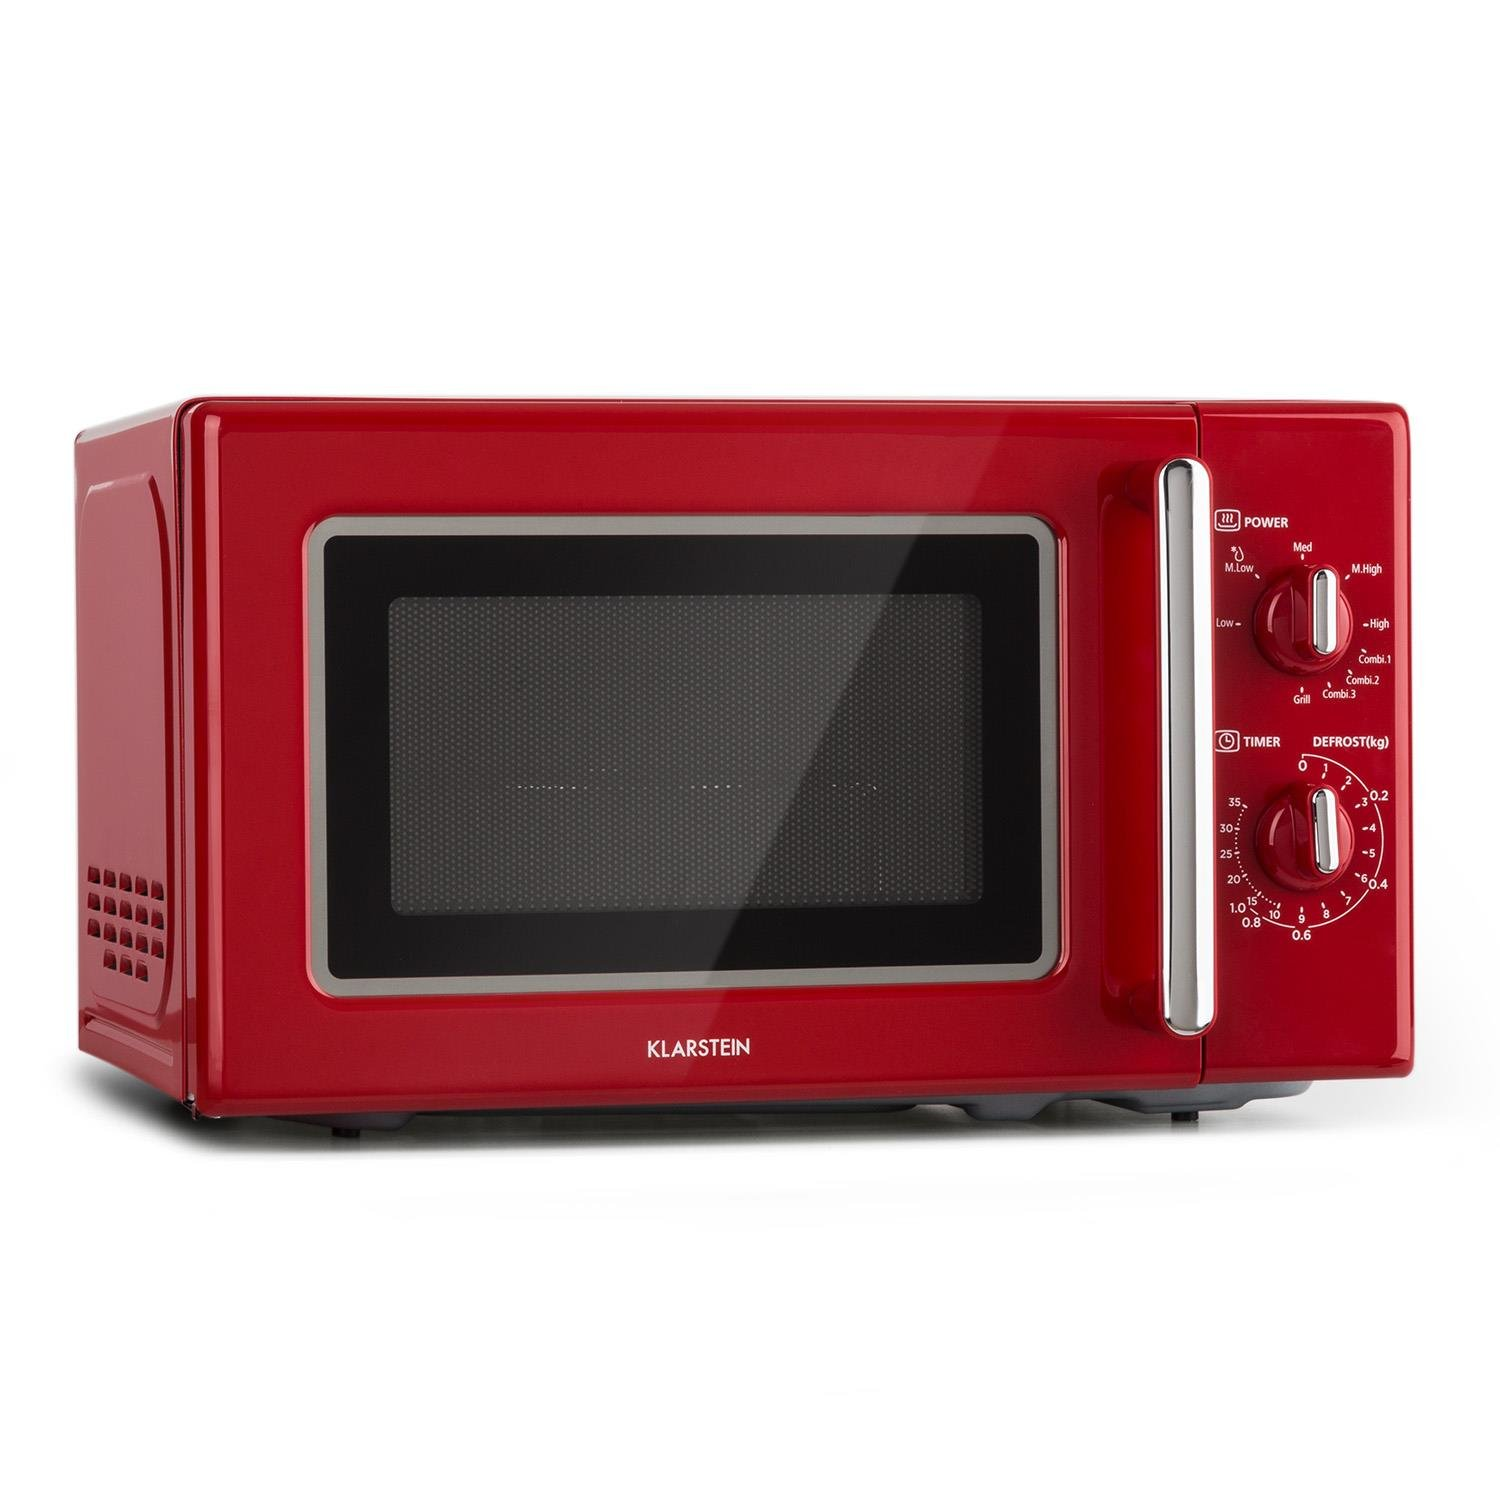 Klarstein Caroline Microwave Microwave Grill Combo 2-in-1 Microwave Grill Function 20-Litre Cooking Space 700/1000 Watts Power Ø 25.5cm QuickSelect Retro Design Stainless Steel Red